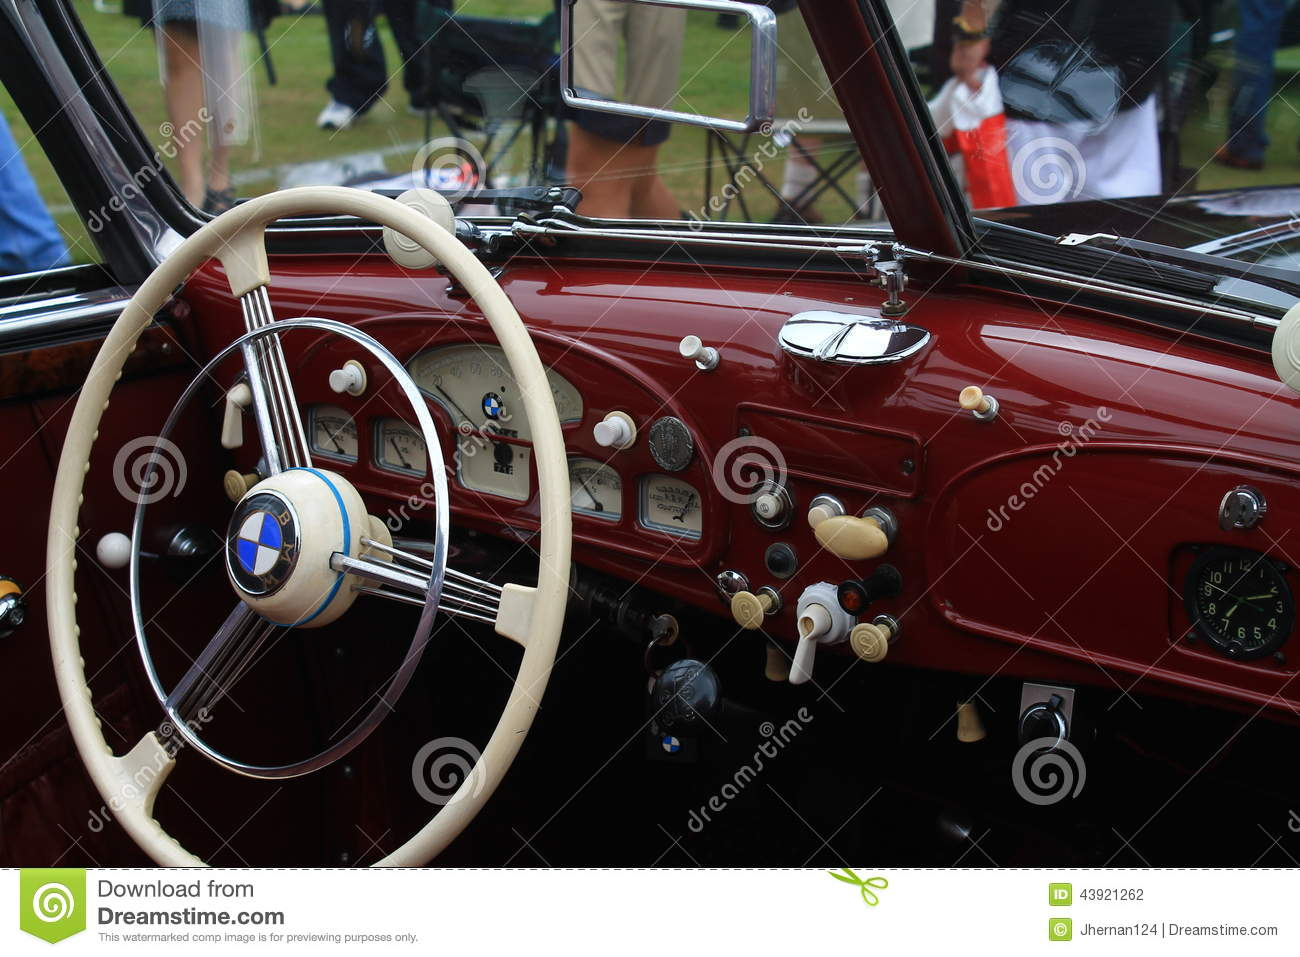 vintage bmw sports car interior editorial photography image 43921262. Black Bedroom Furniture Sets. Home Design Ideas